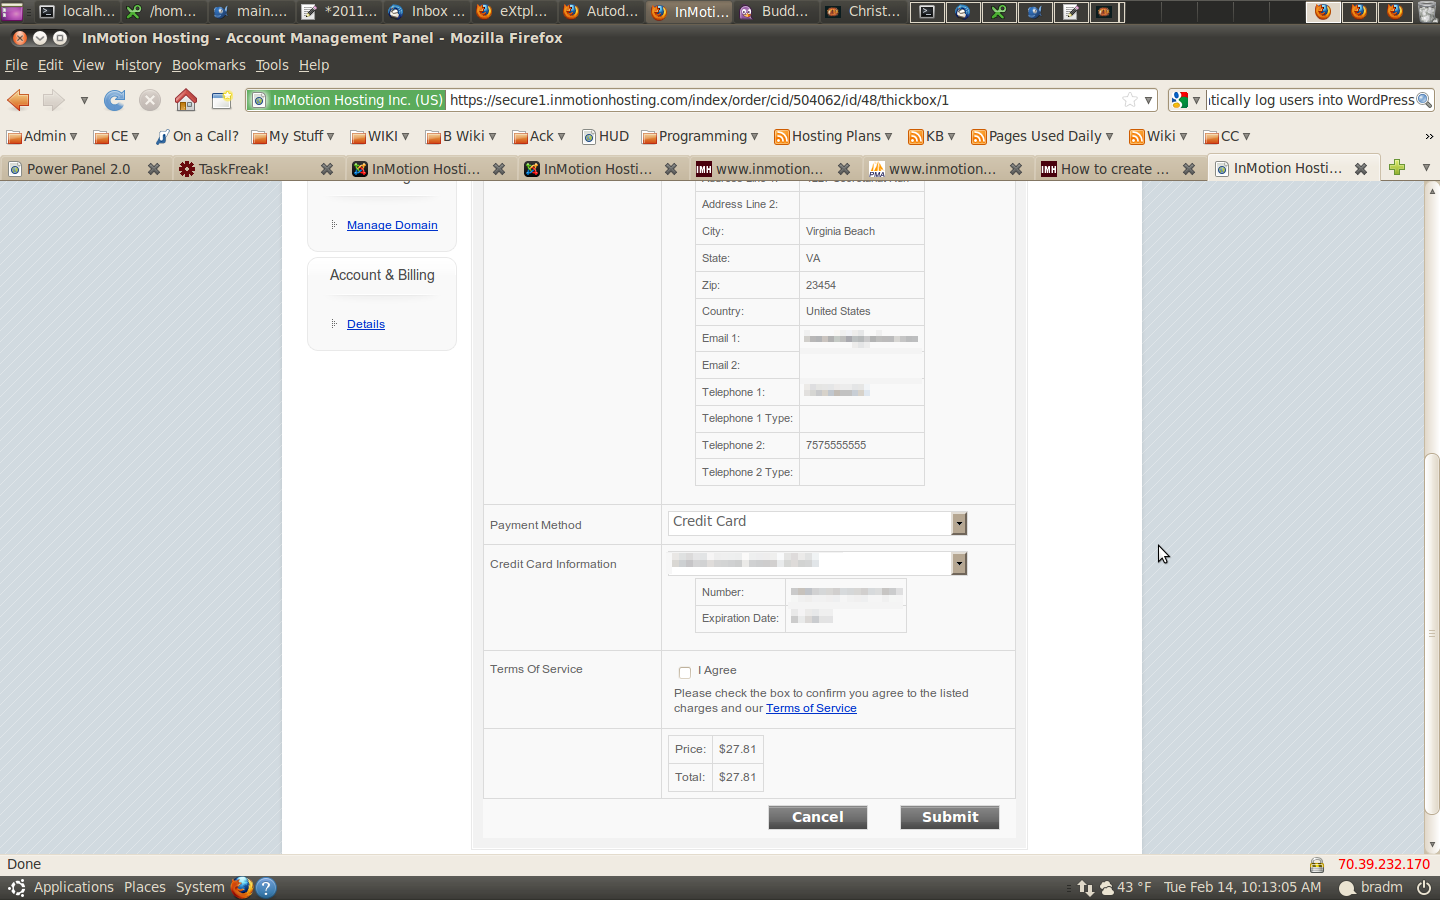 step4-fill-in-the-details-and-click-submit